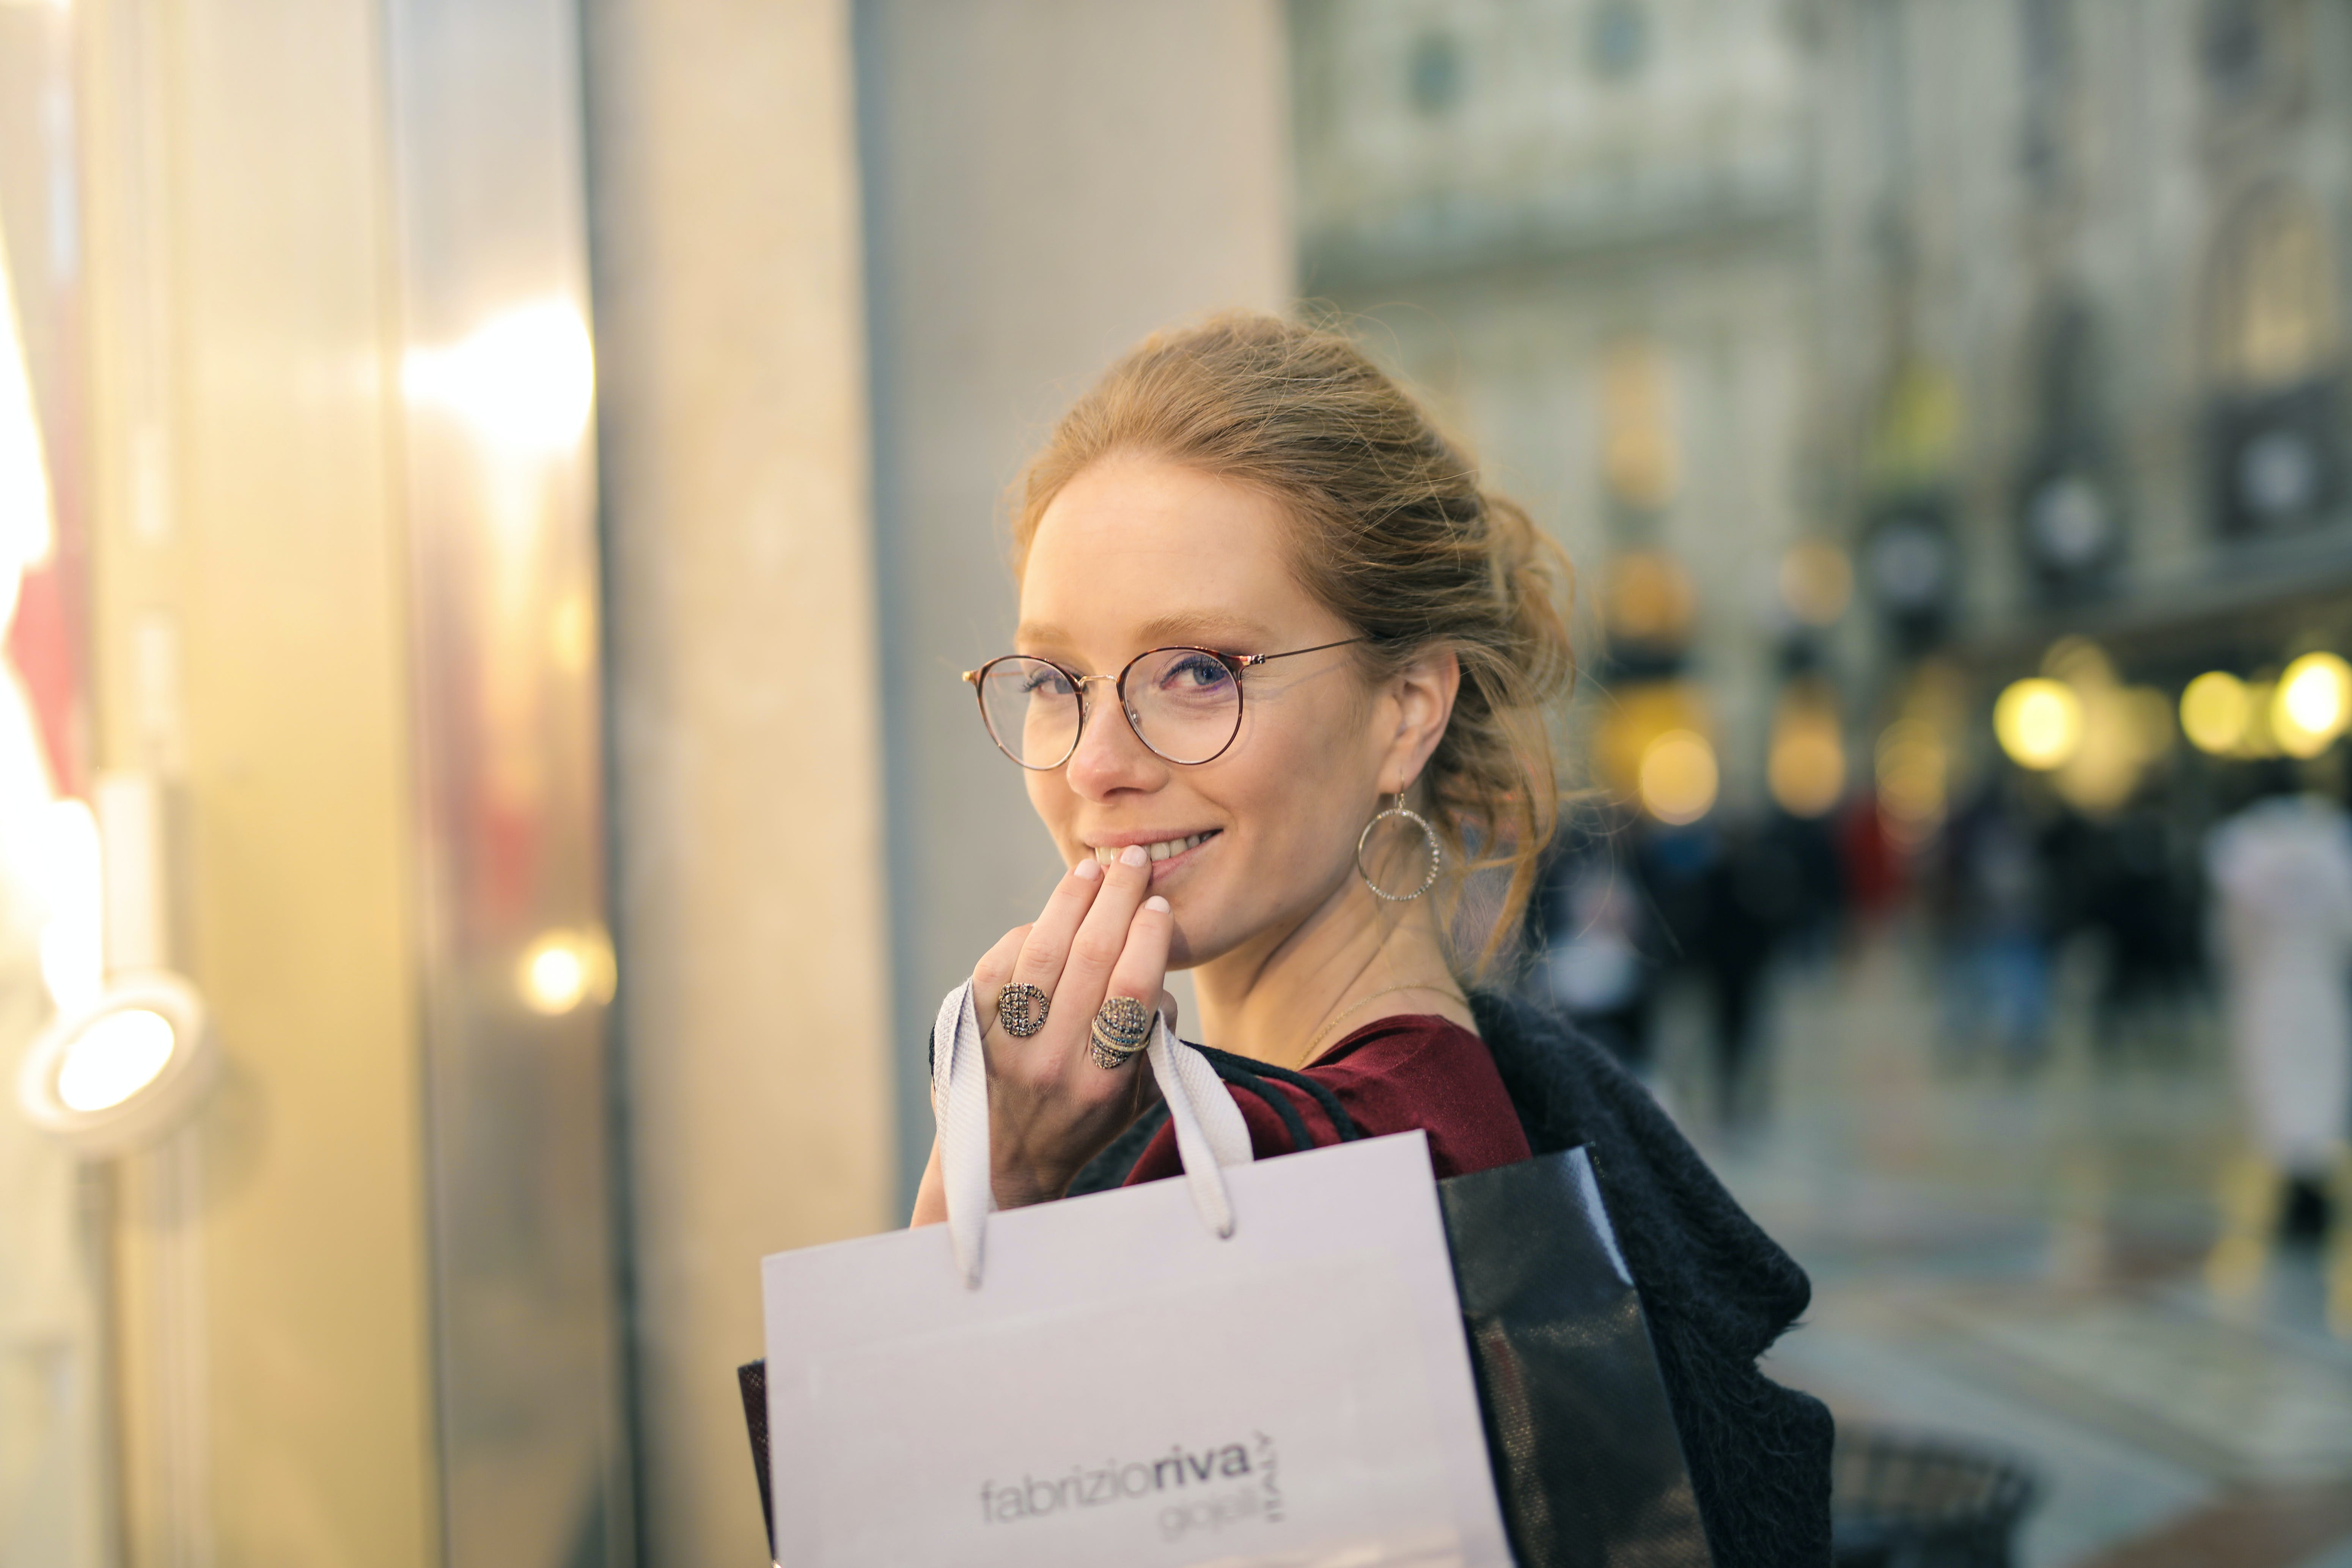 Close-Up Photography of a Woman Holding Paper Bags